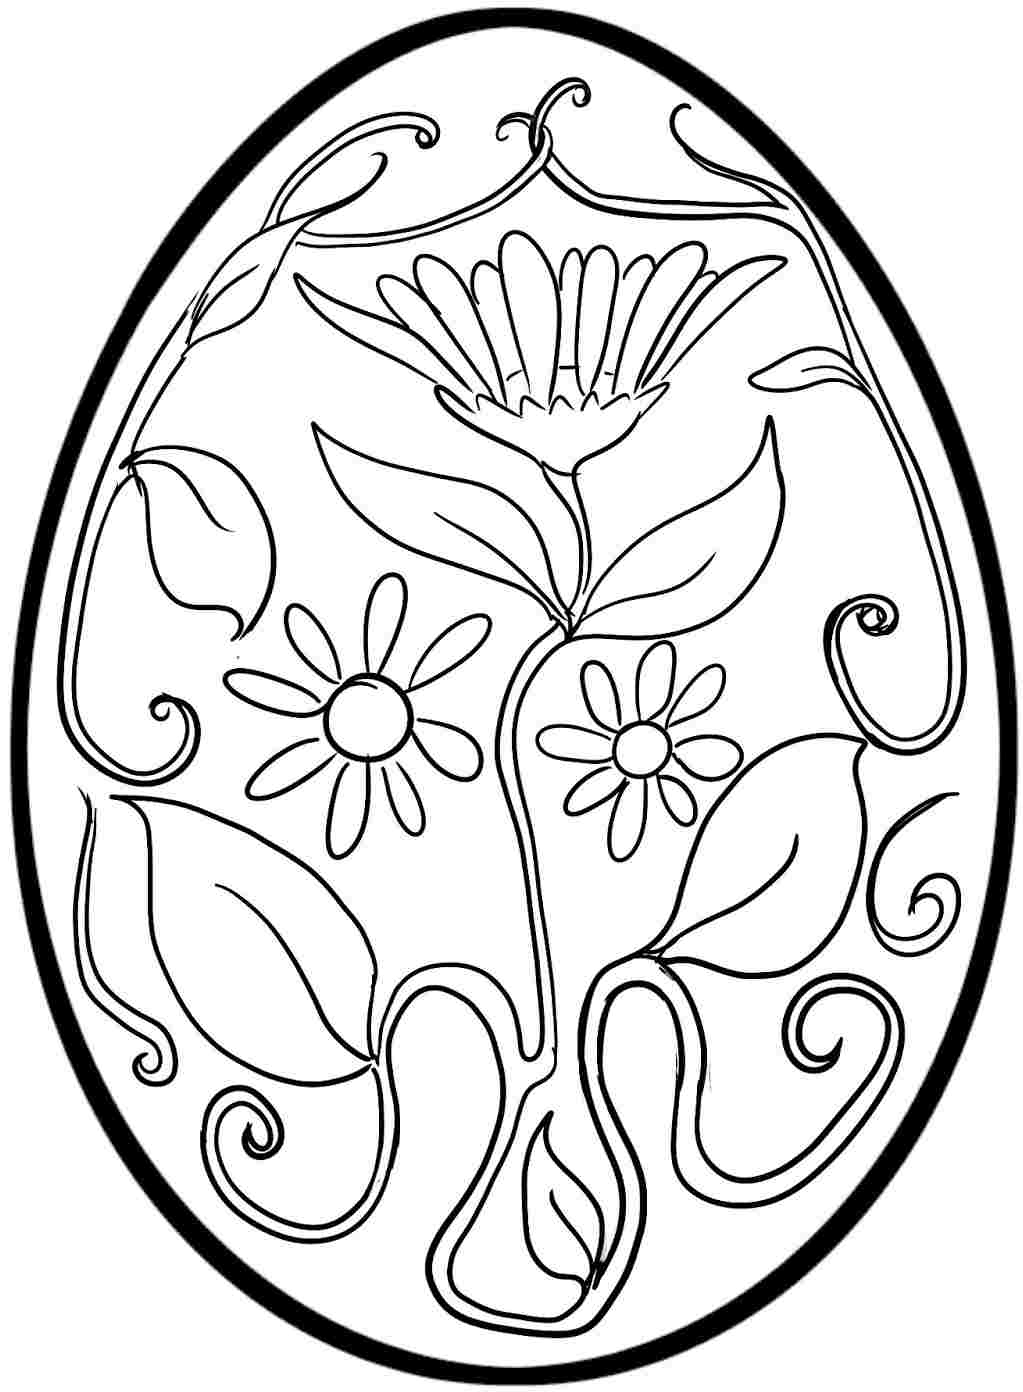 coloring pages of easter eggs simple easter egg coloring page creative ads and more easter eggs of pages coloring